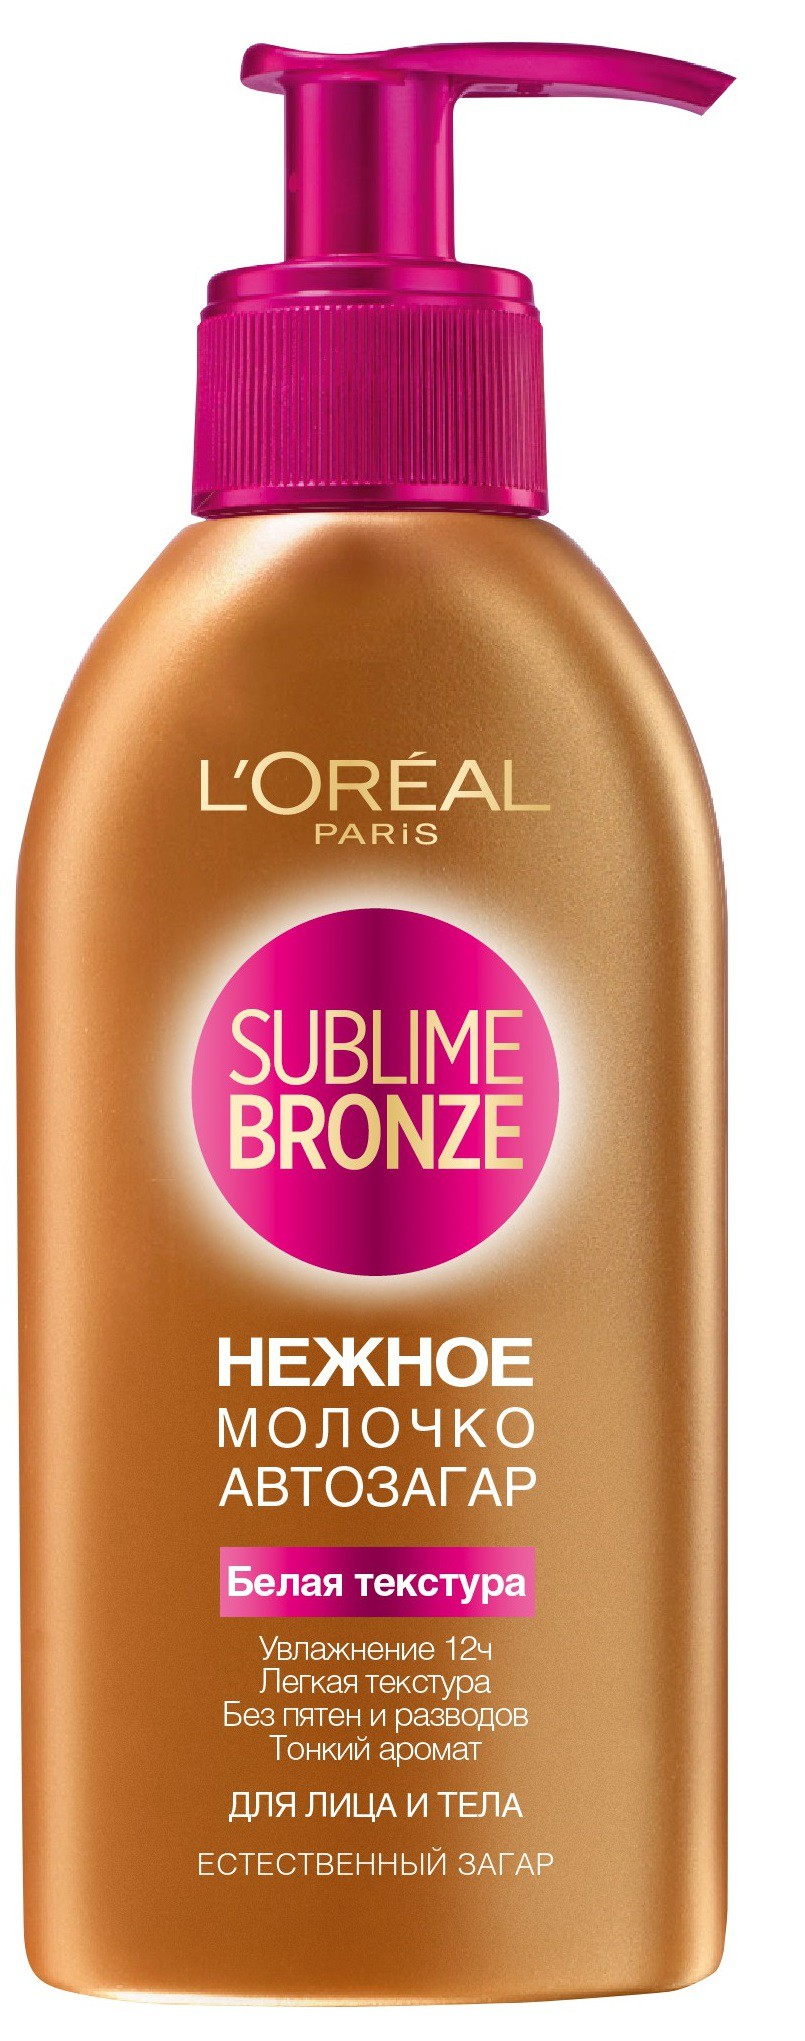 L'Oreal Paris Sublime Bronze Молочко-автозагар для лица и тела, легкое, тающее, 150 мл